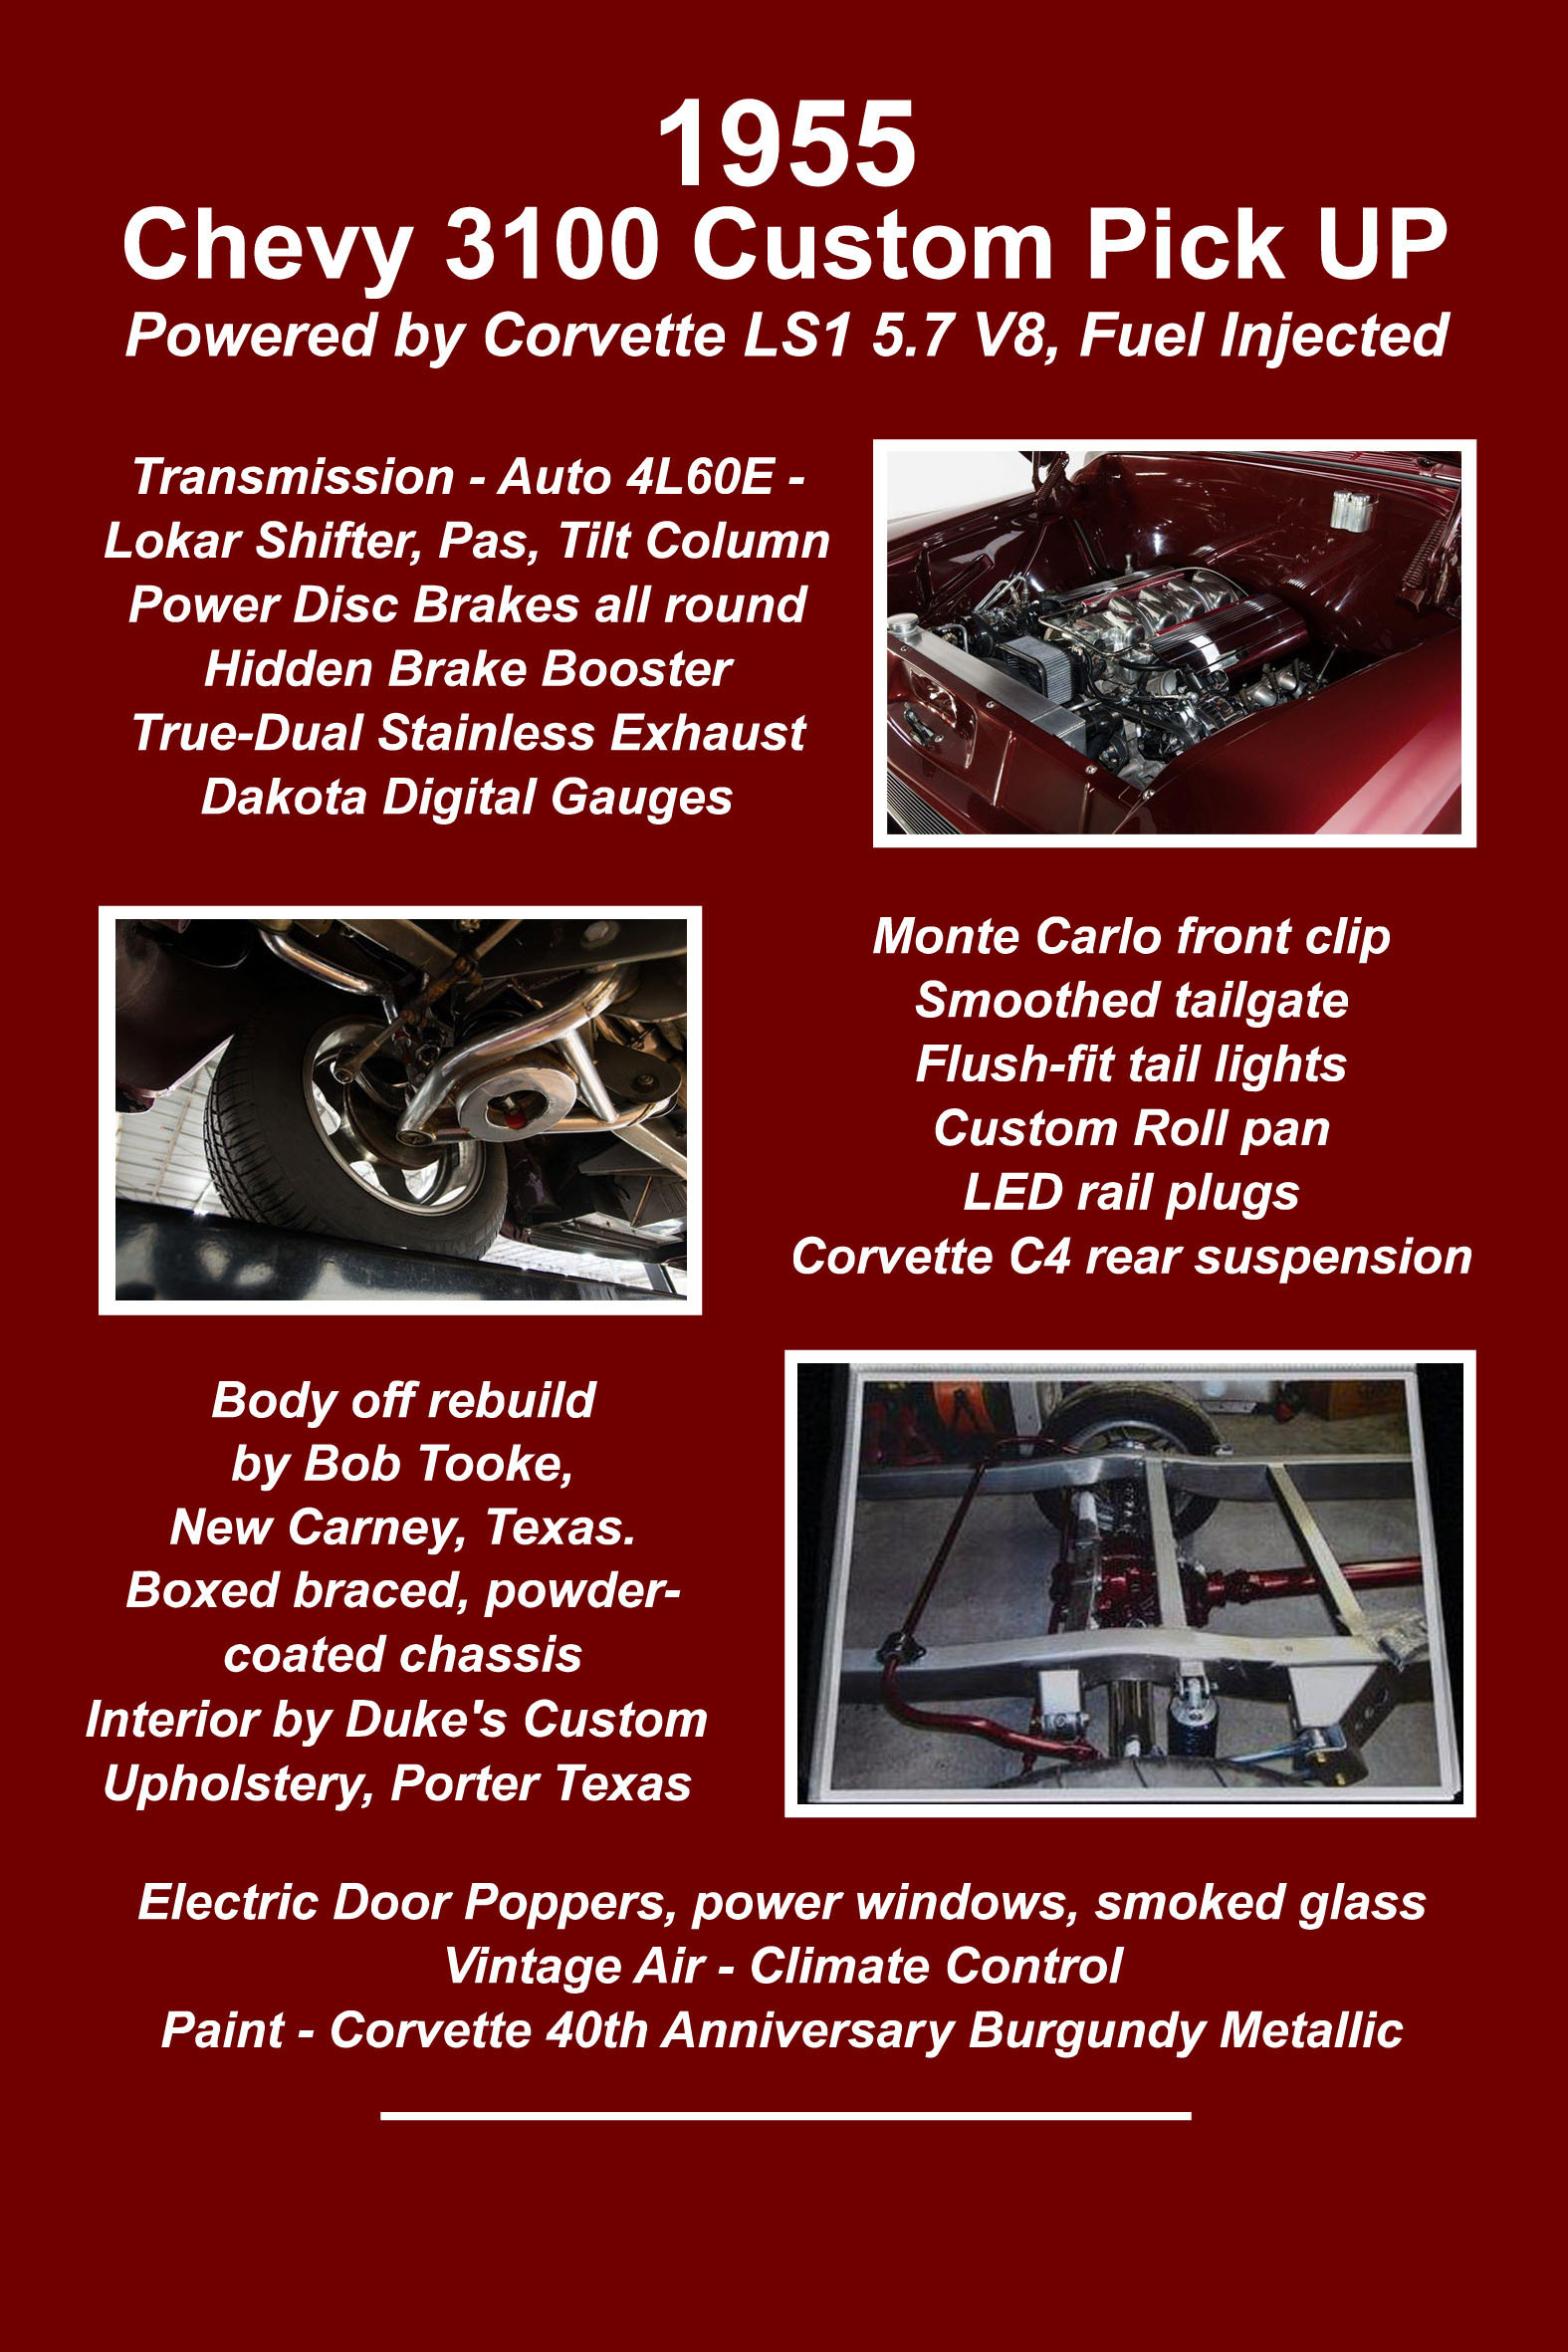 Chevy 3100 Truck 1955 Area 51 Ford F100 Rear Tail Lights View Image